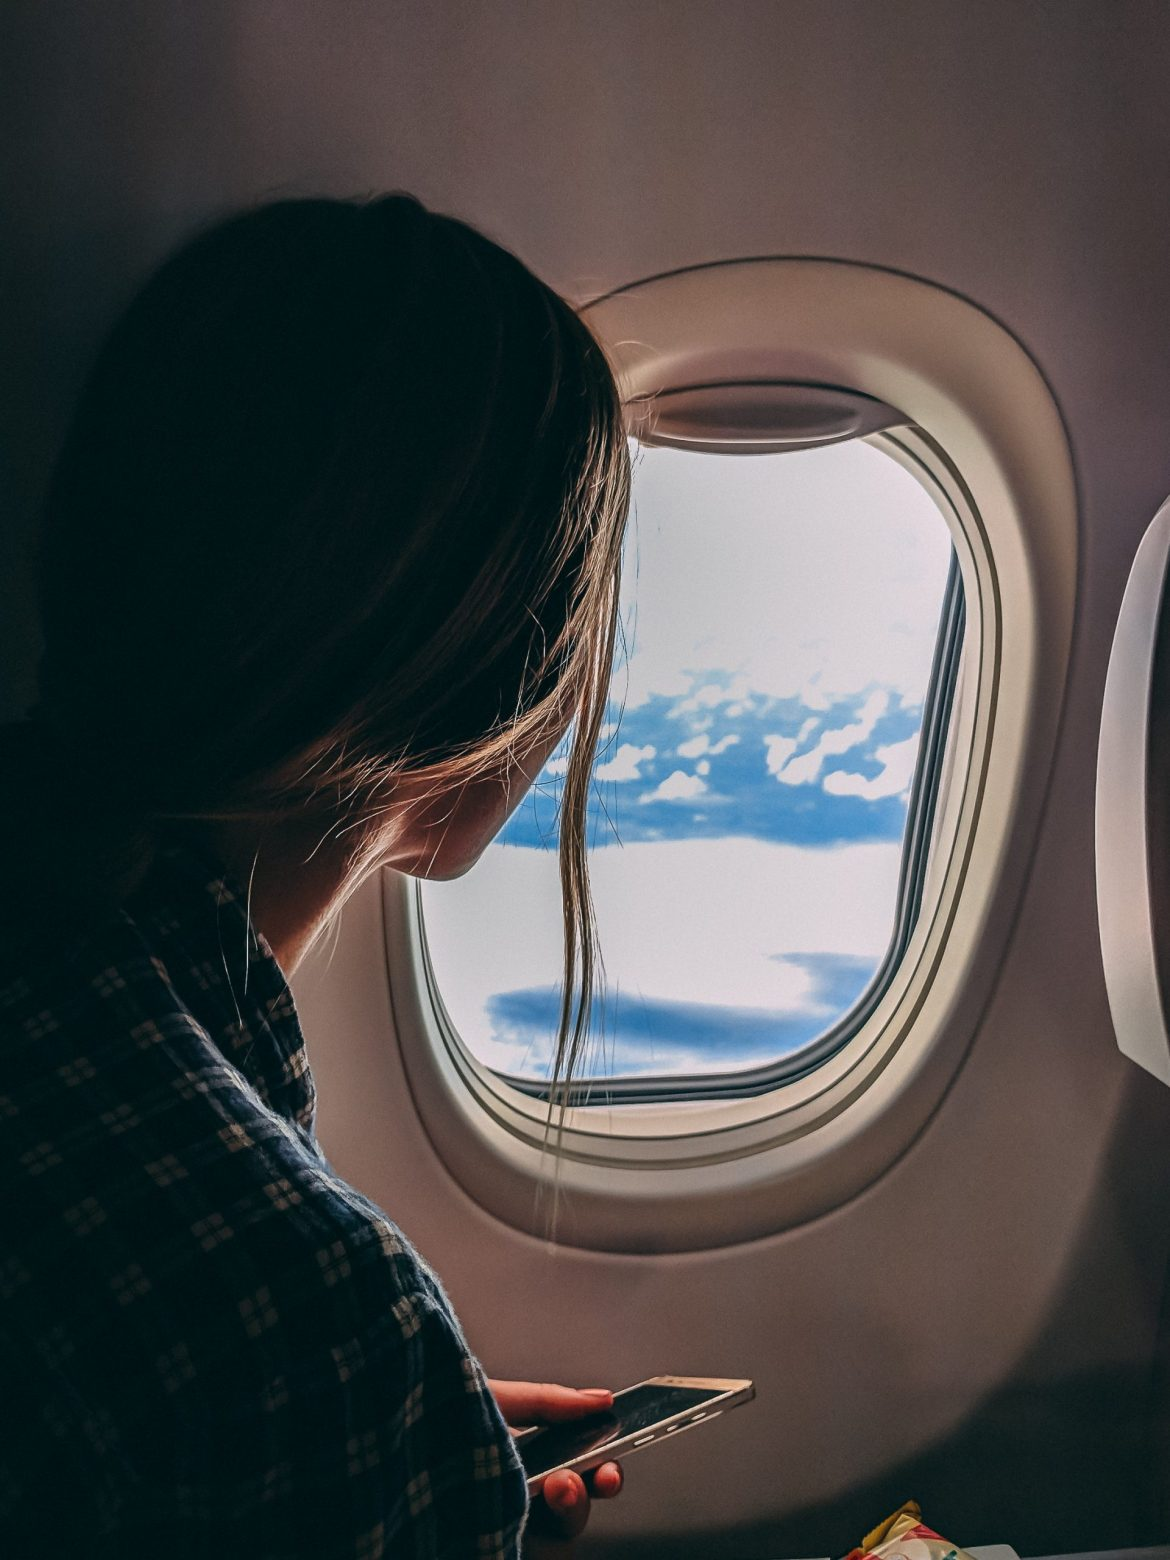 How to travel safely and maintain health